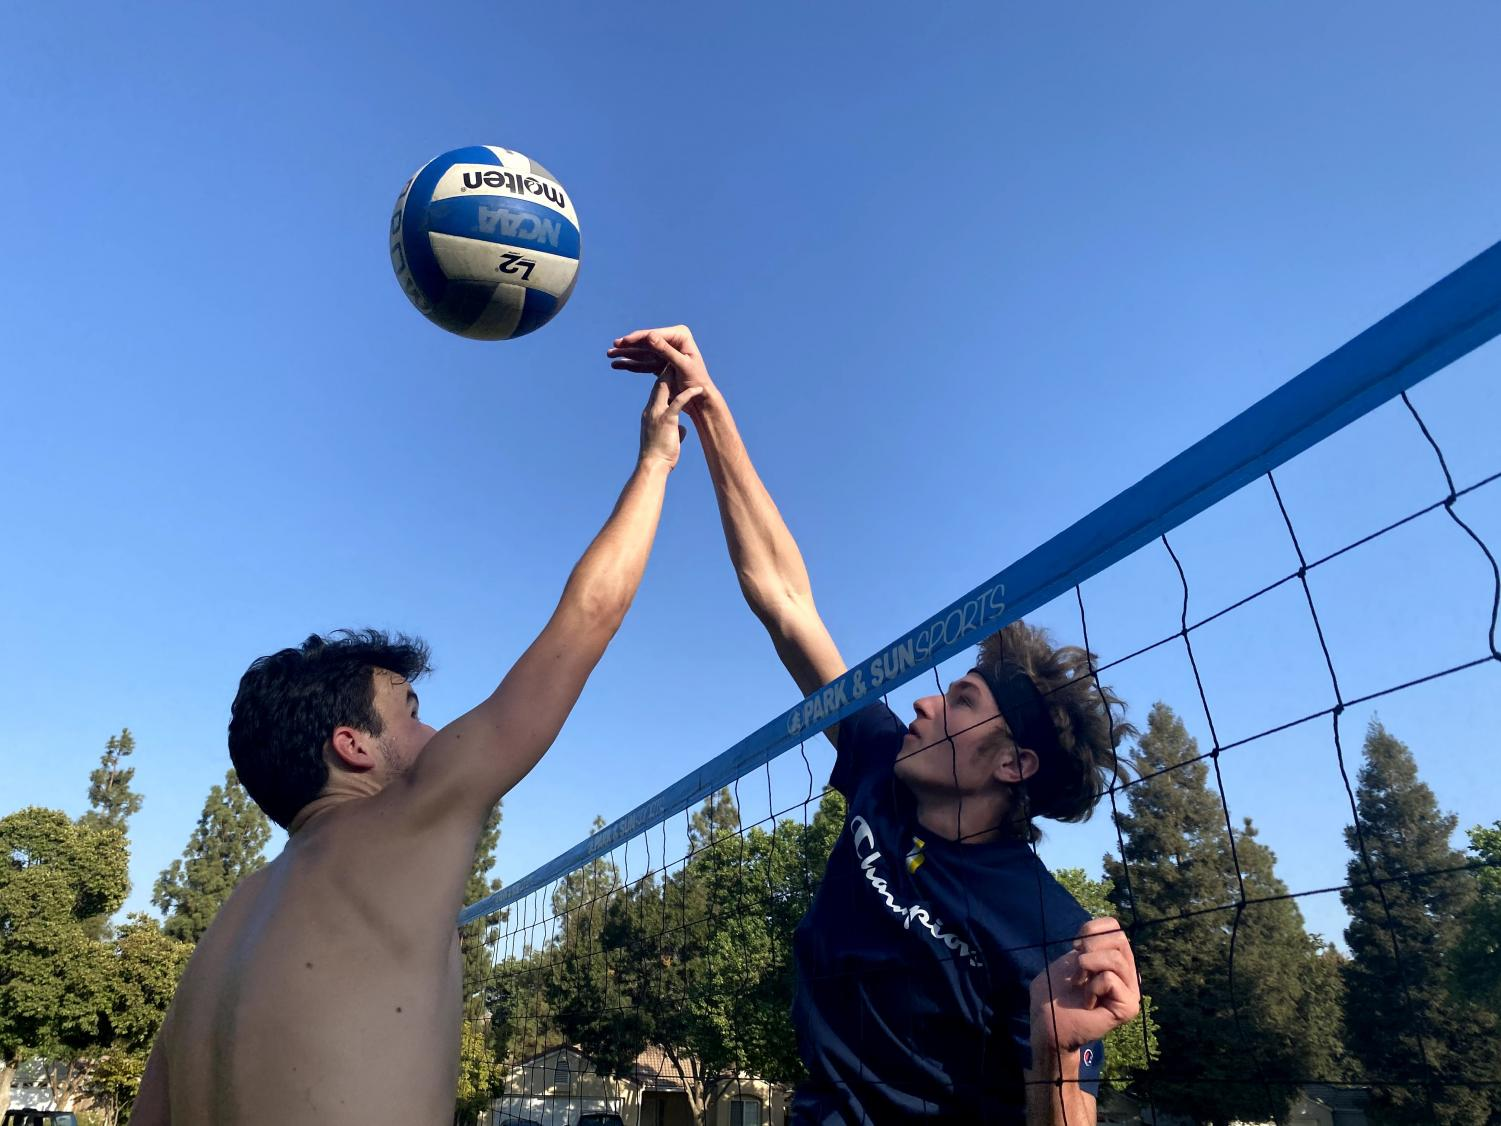 At The Net With Volleyball